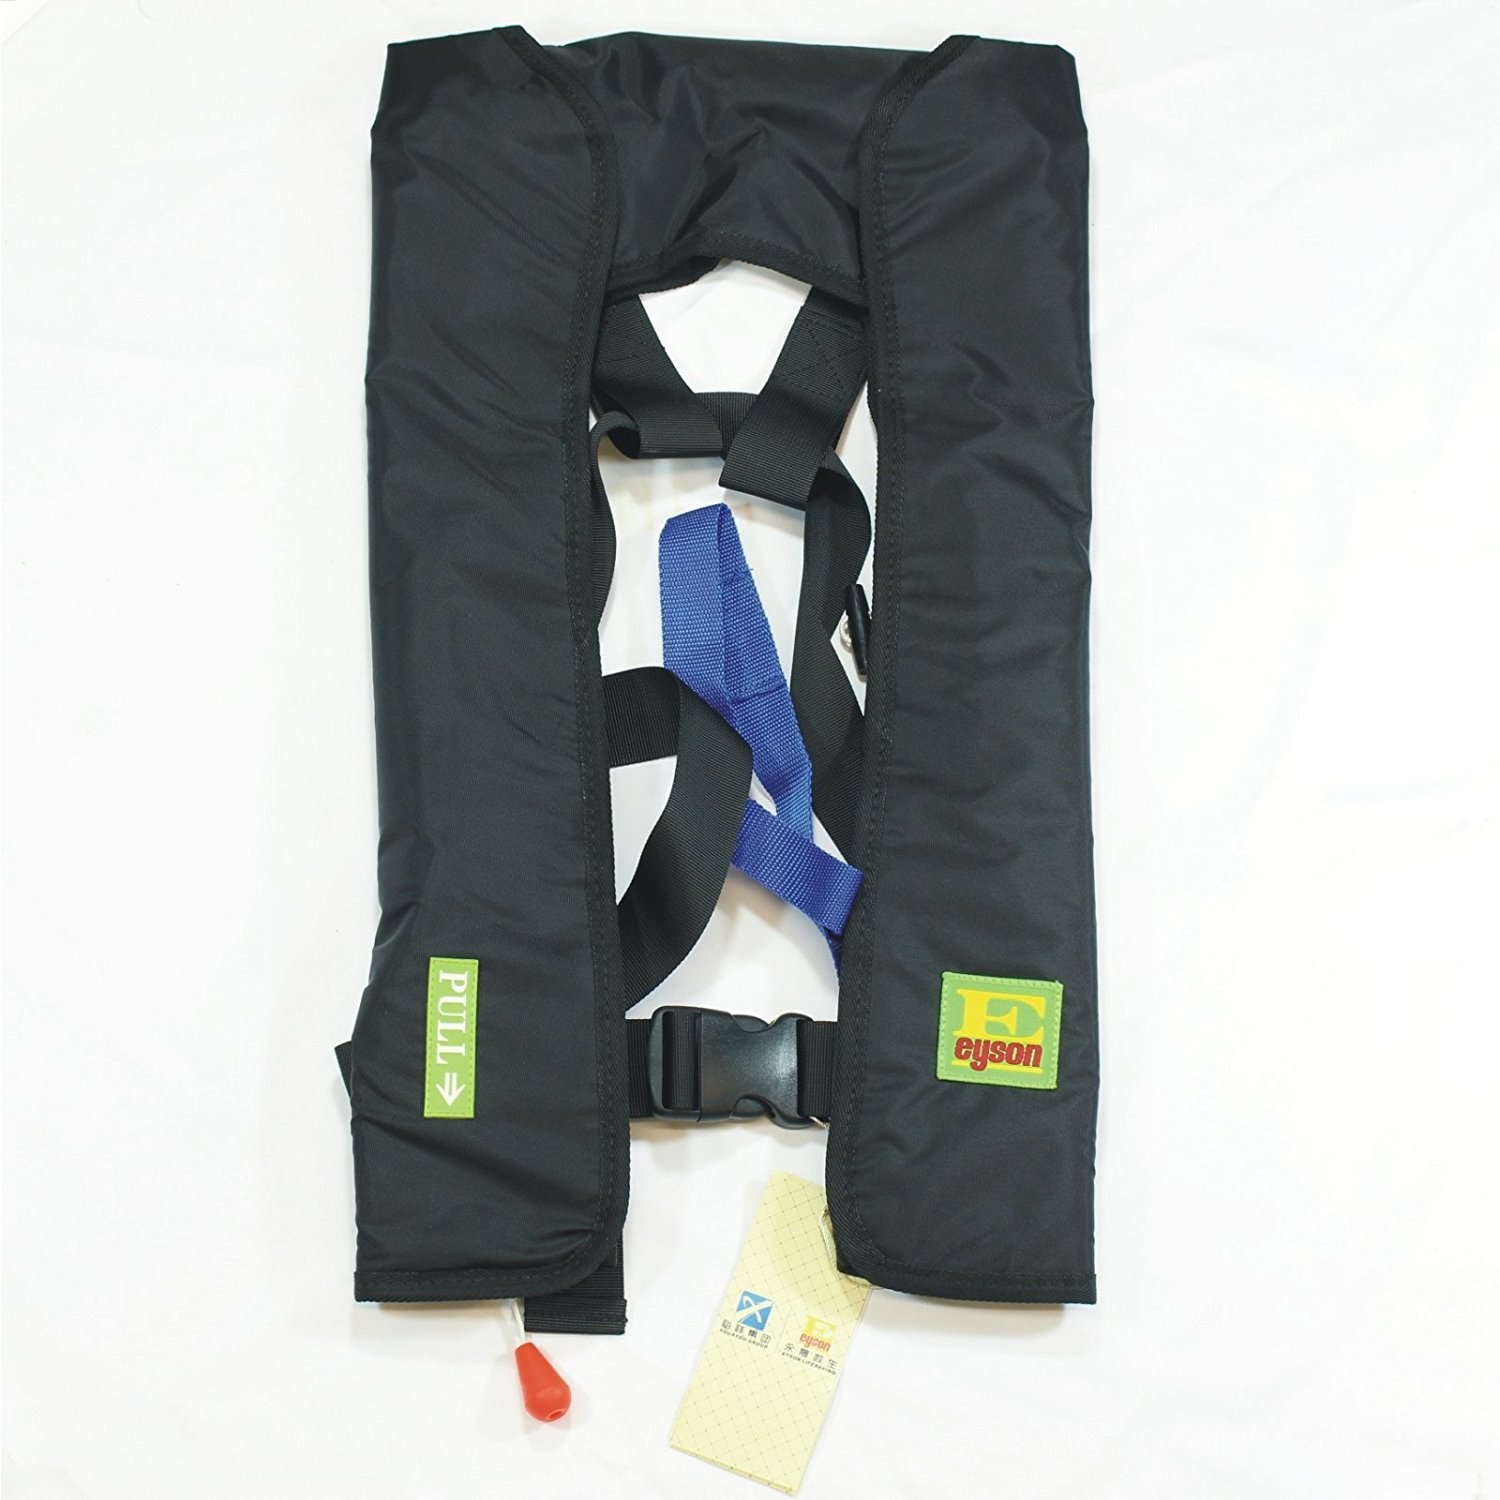 Click here to buy Lifesaving Pro Manual Inflatable Life Jacket Lifejacket PFD Floating Life Vest Inflate Survival Aid Lifesaving PFD Basic... by Lifesaving Pro.